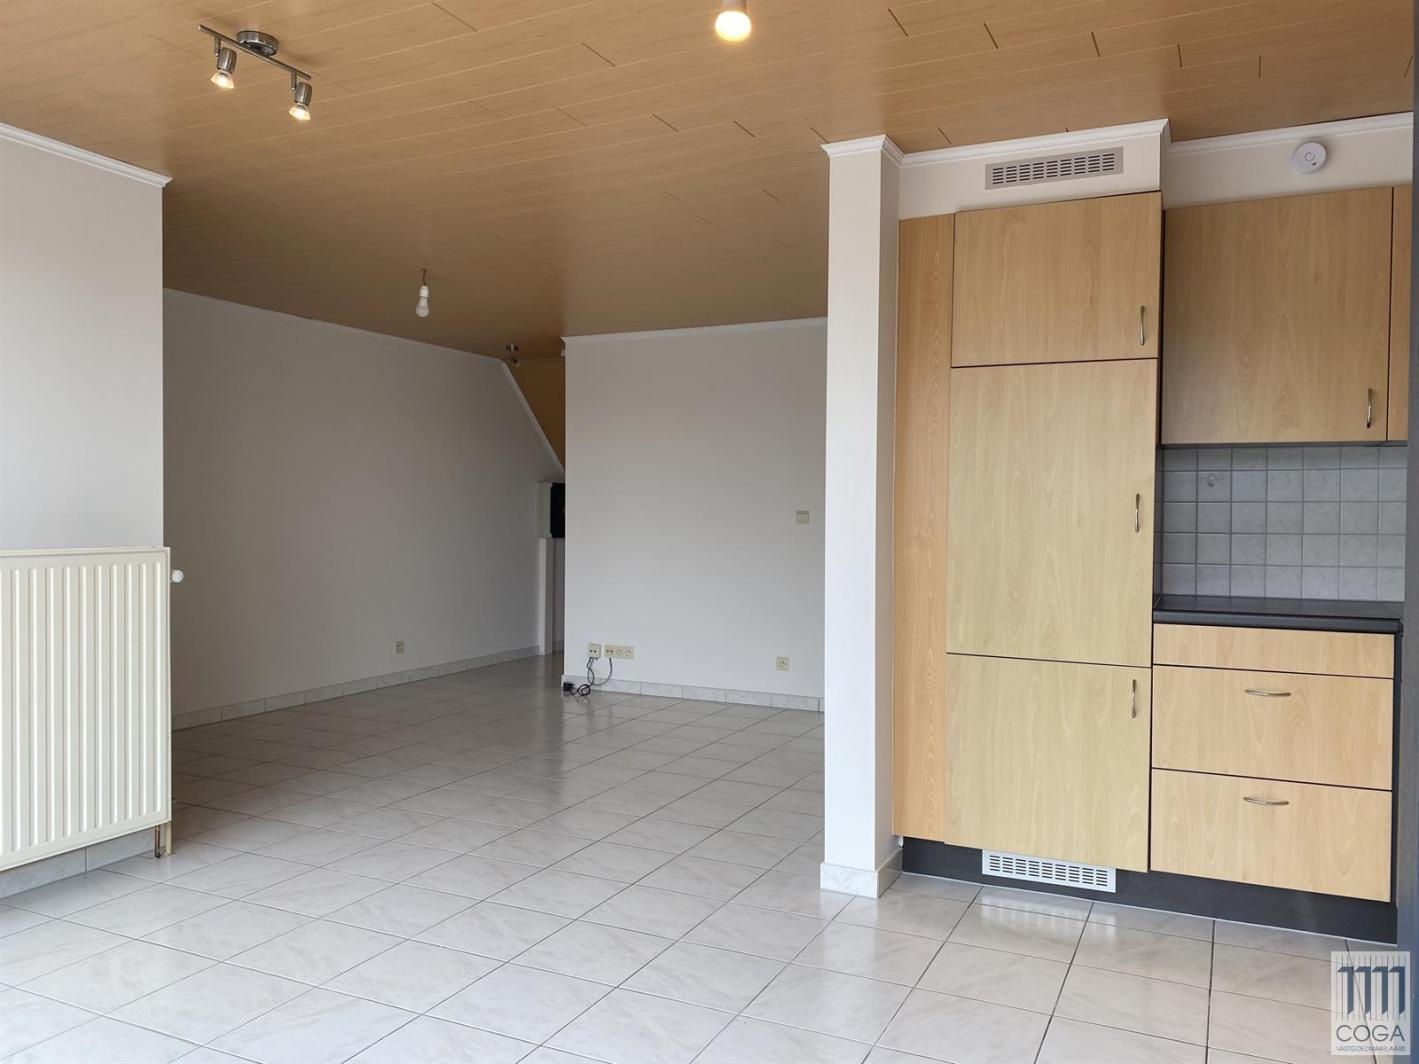 Appartement te Brecht Sint-Job-In-'t-Goor